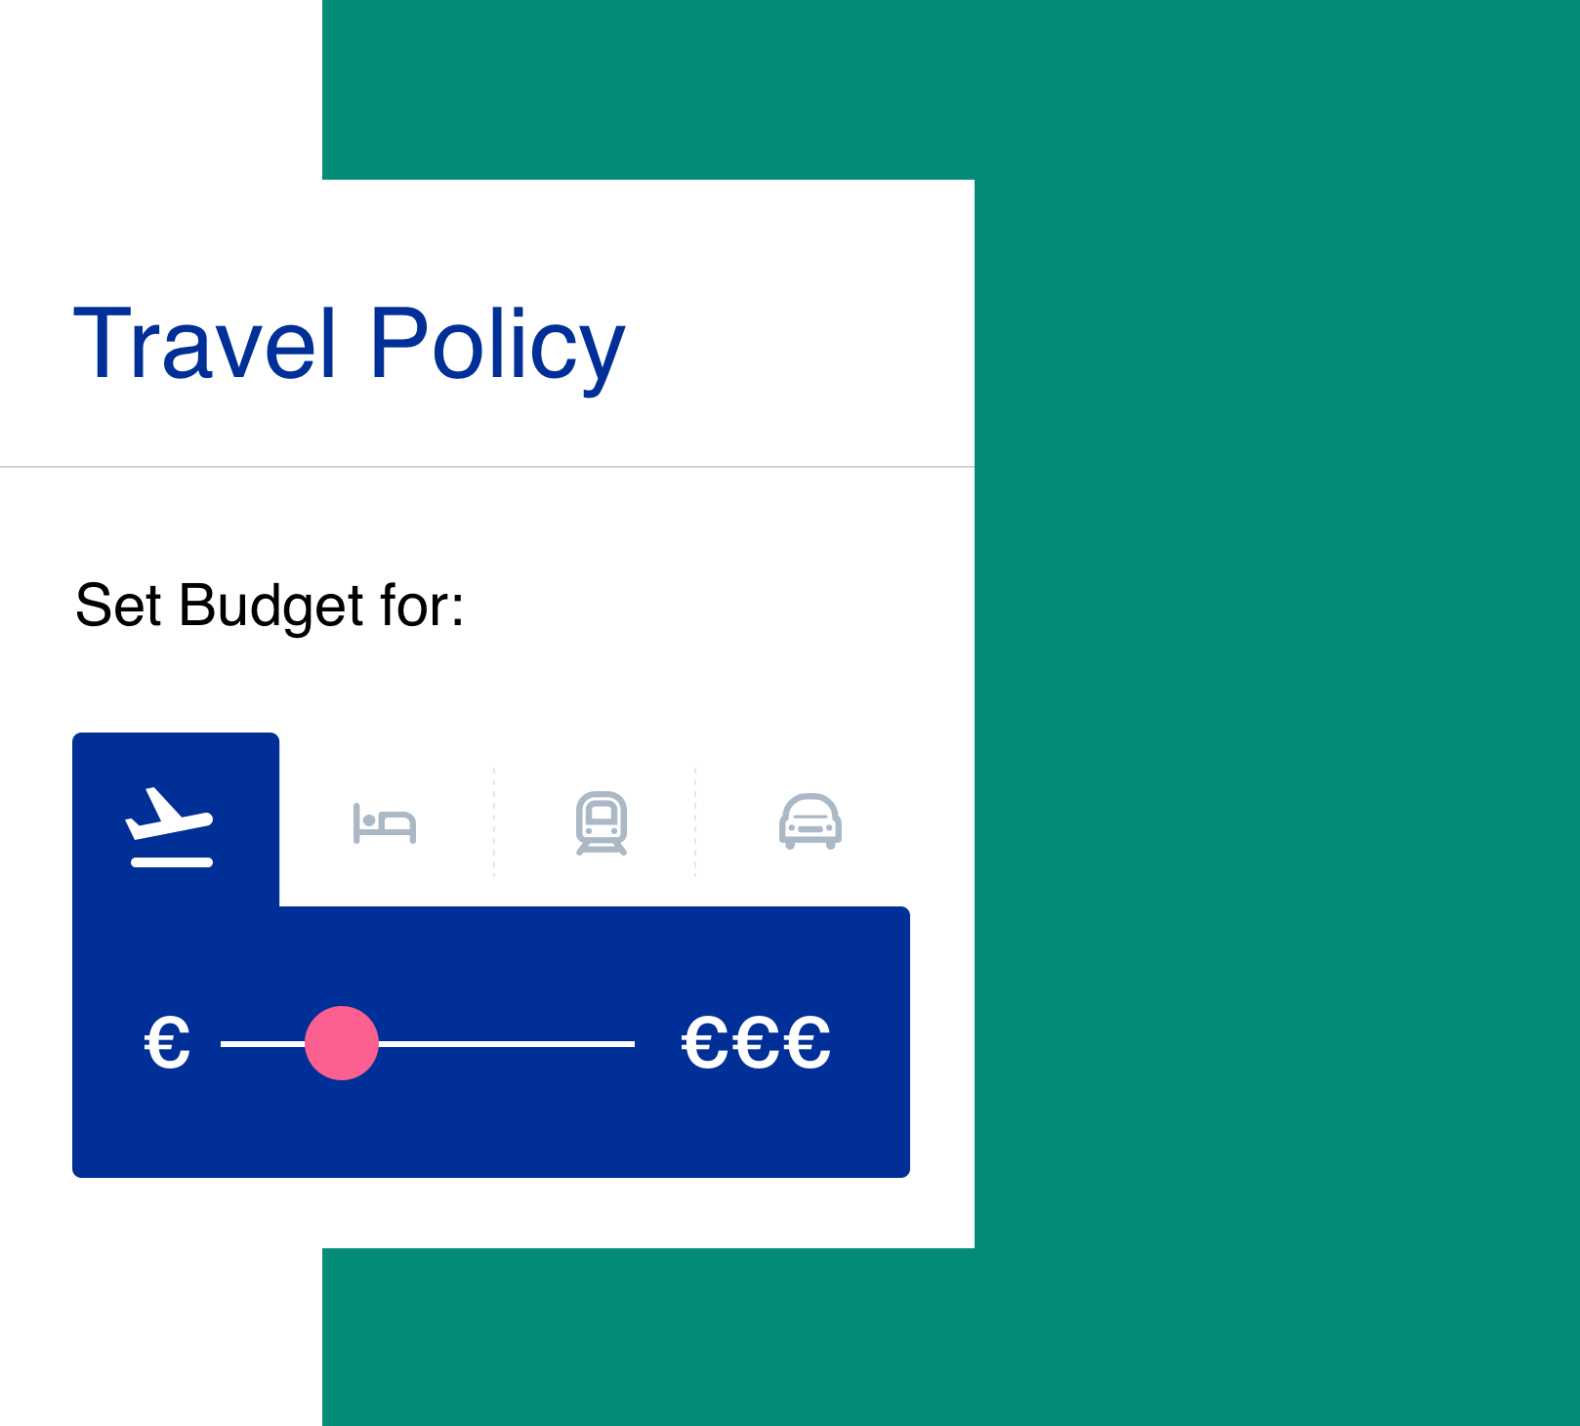 Travel policy image